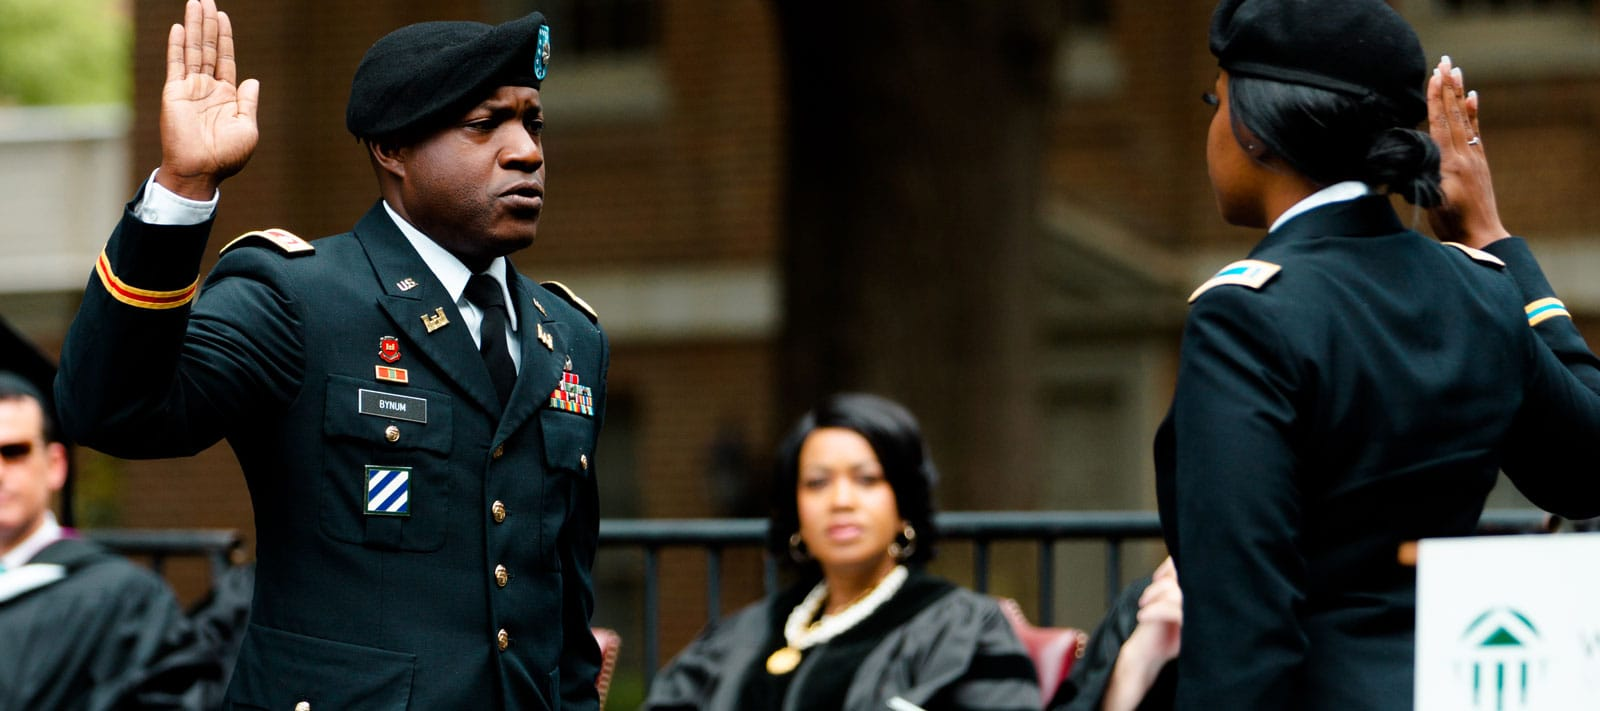 military - Accelerated Degree Programs for Working Adults